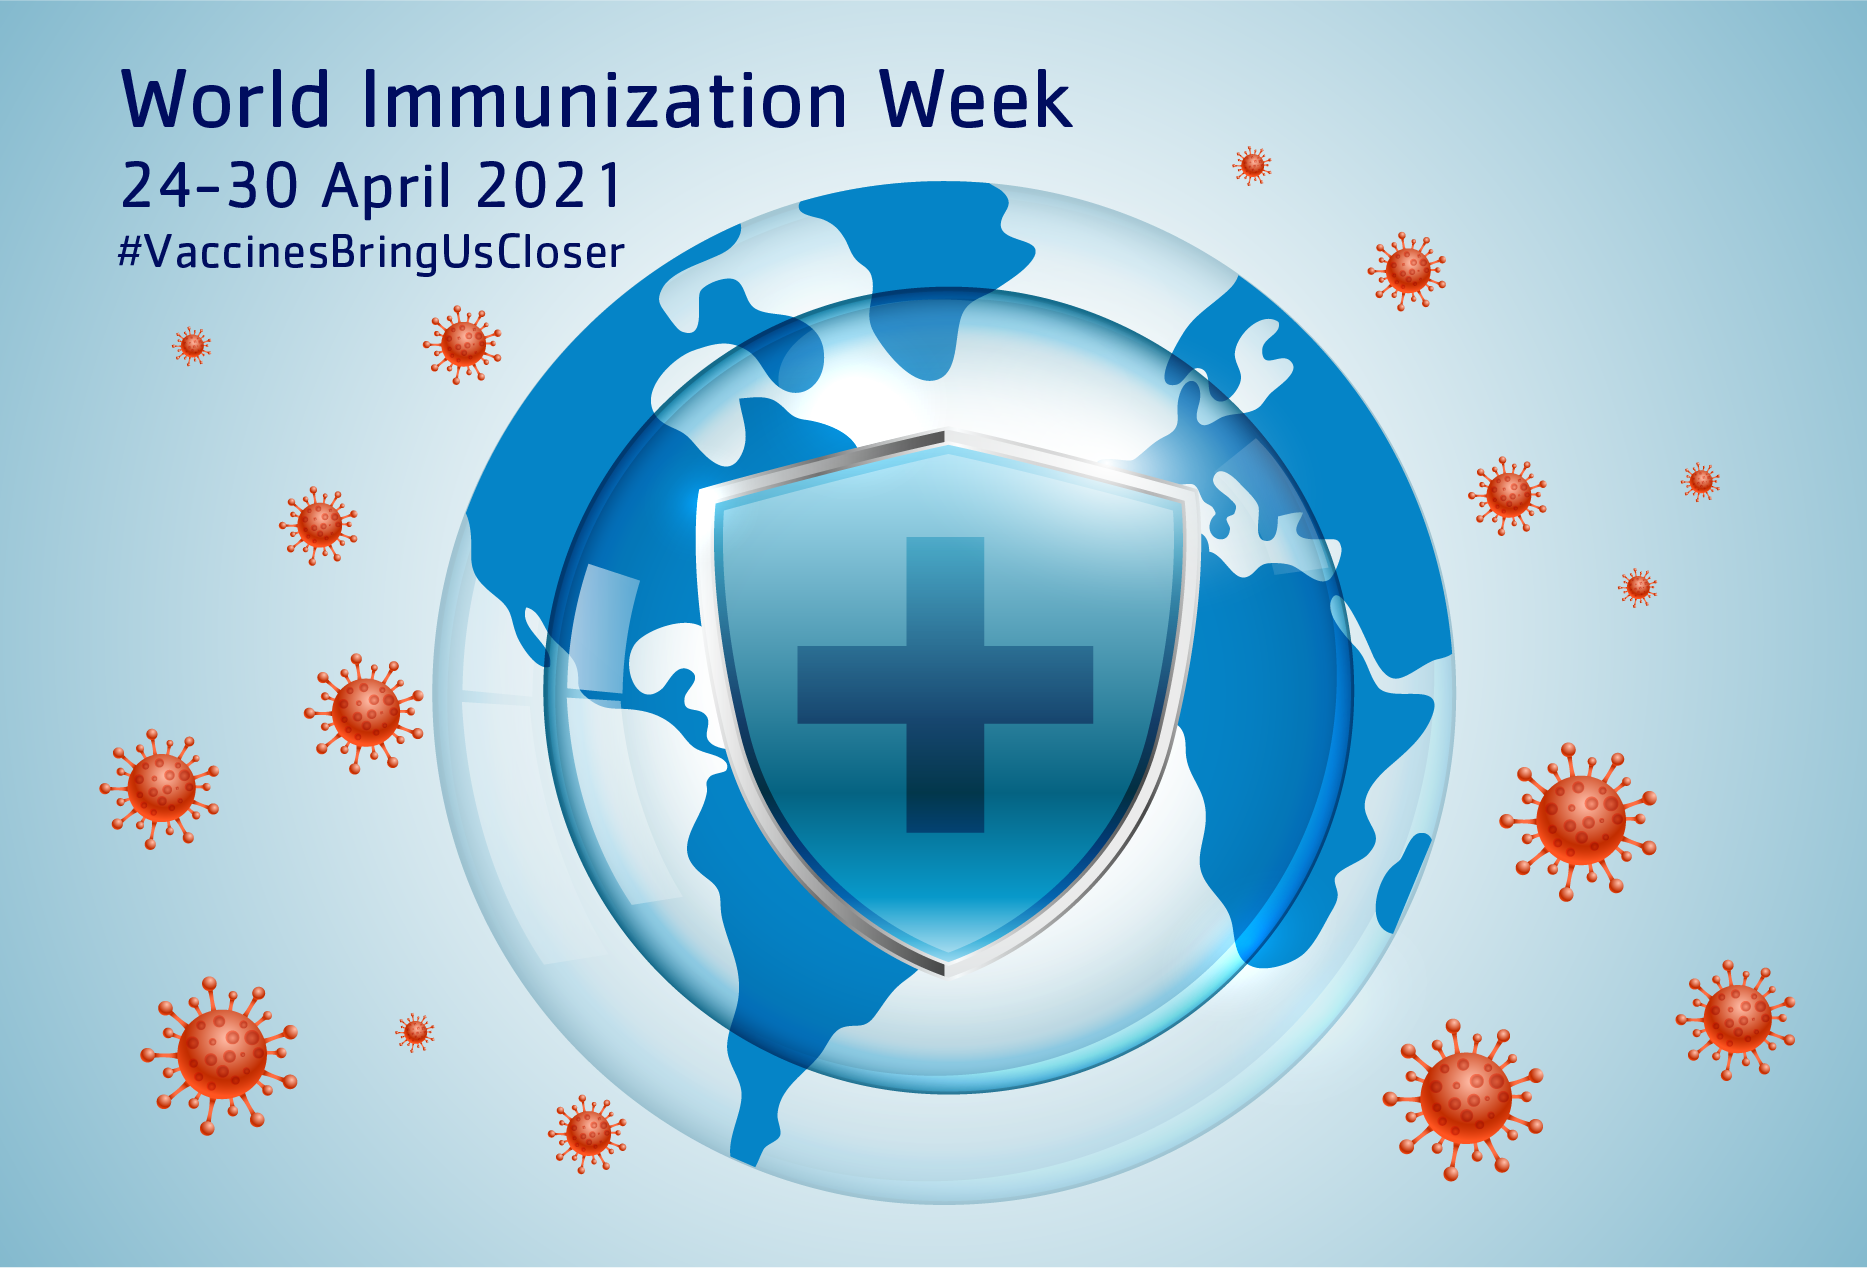 Immunizing not only for viral disease prevention but also cancer recurrence prevention